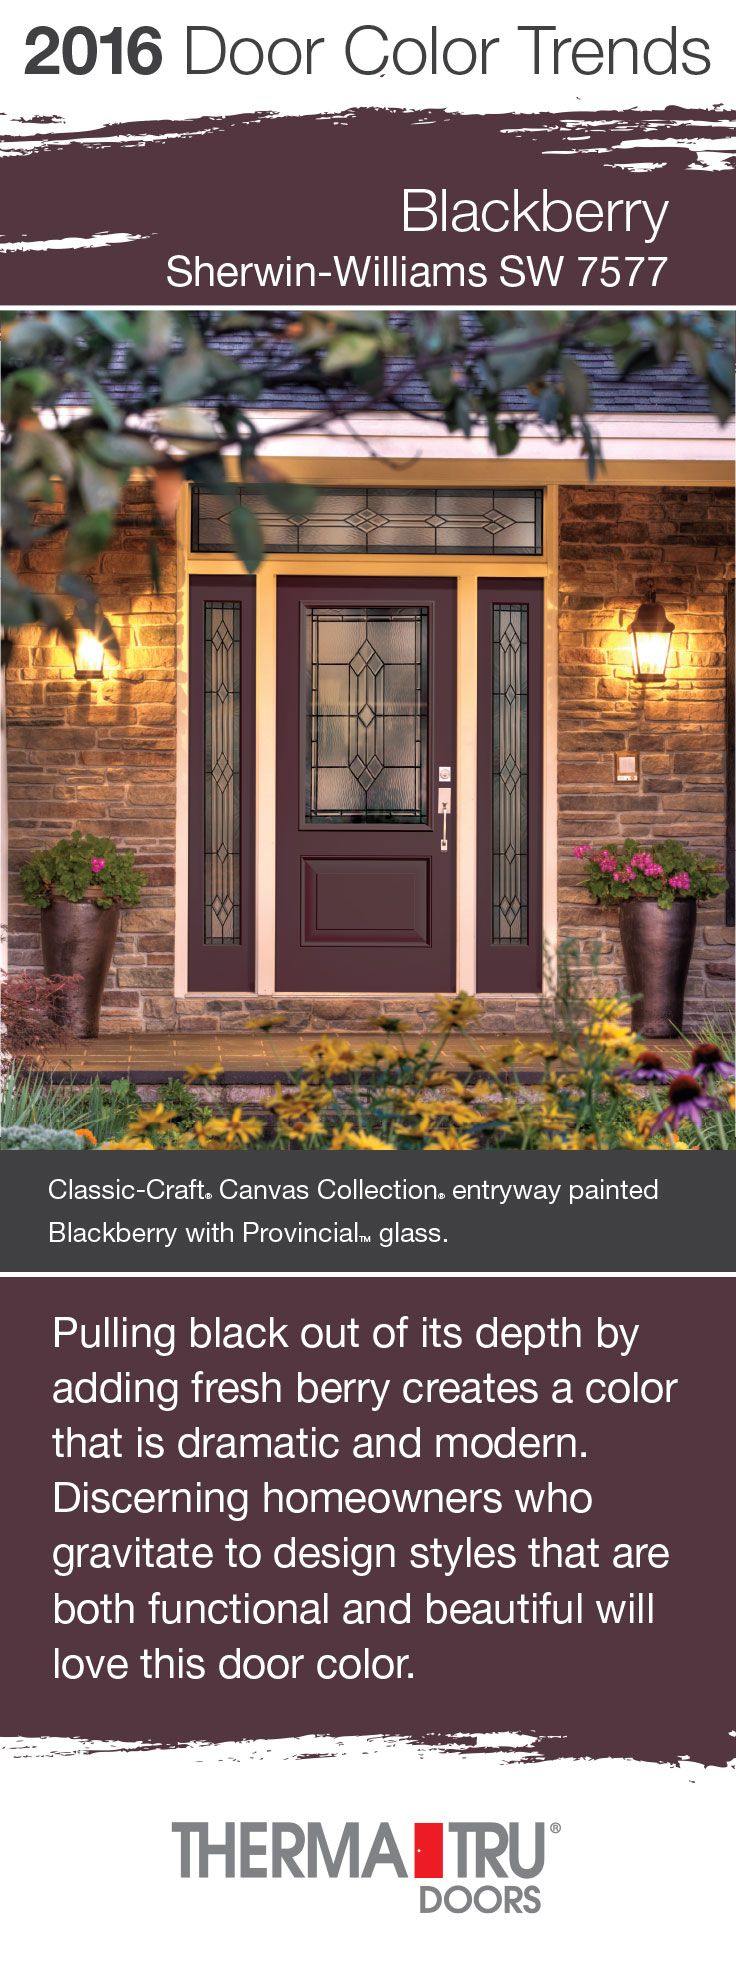 Blackberry by Sherwin-Williams – one of the front door color trends for 2016 – shown here on a Classic-Craft Canvas Collection door from Therma-Tru.  #FrontDoor #CurbAppeal #Color  http://www.thermatru.com